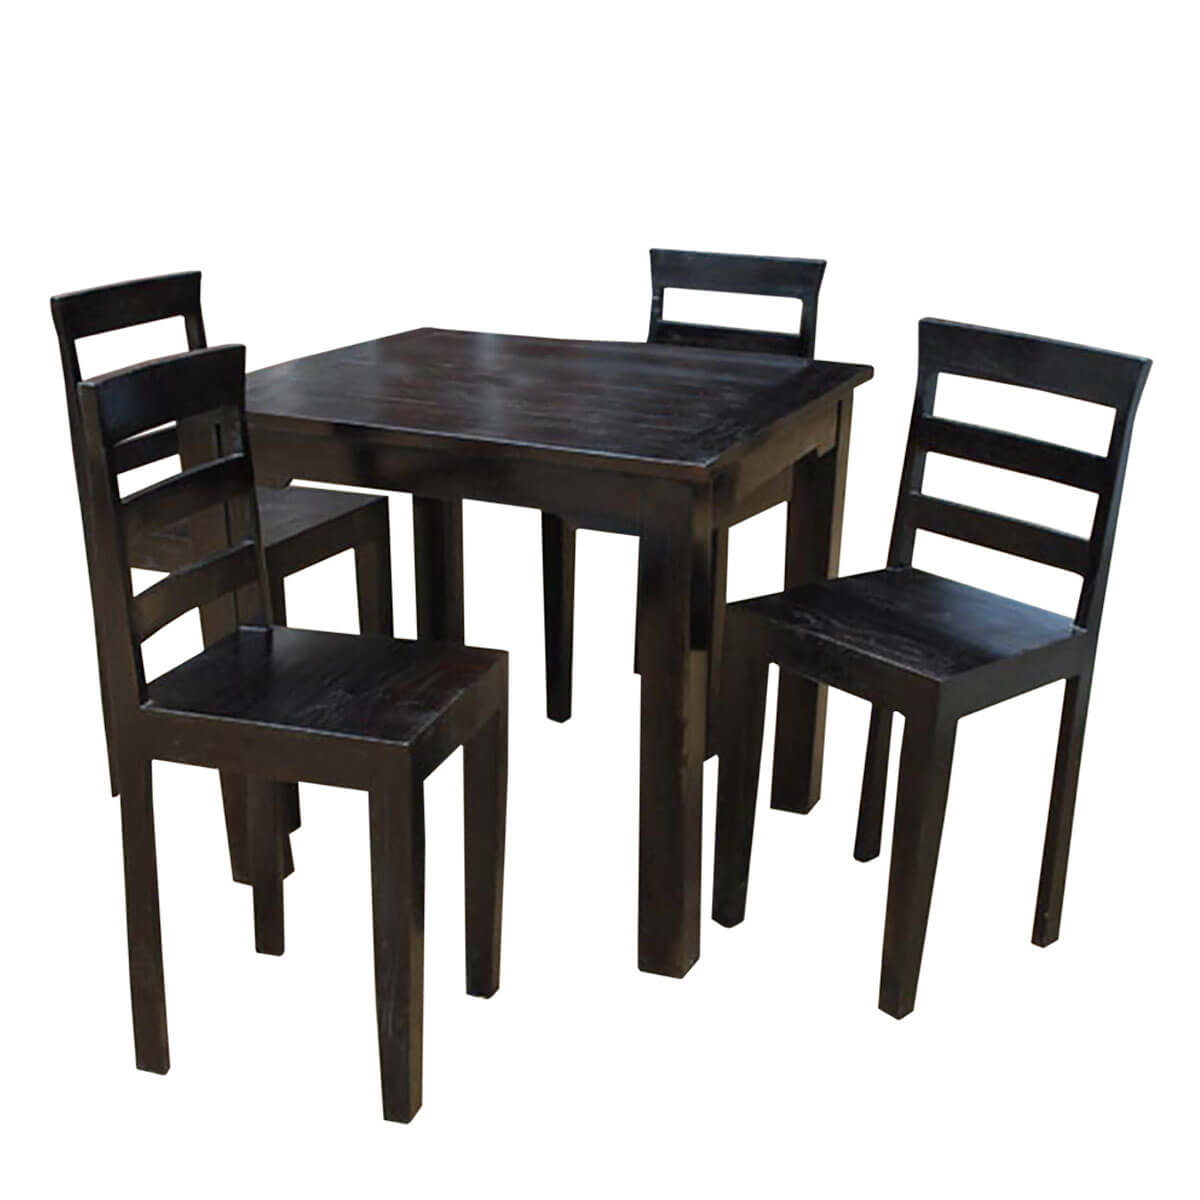 Casual square dining table w ebony finish made of solid wood for Dining table finish